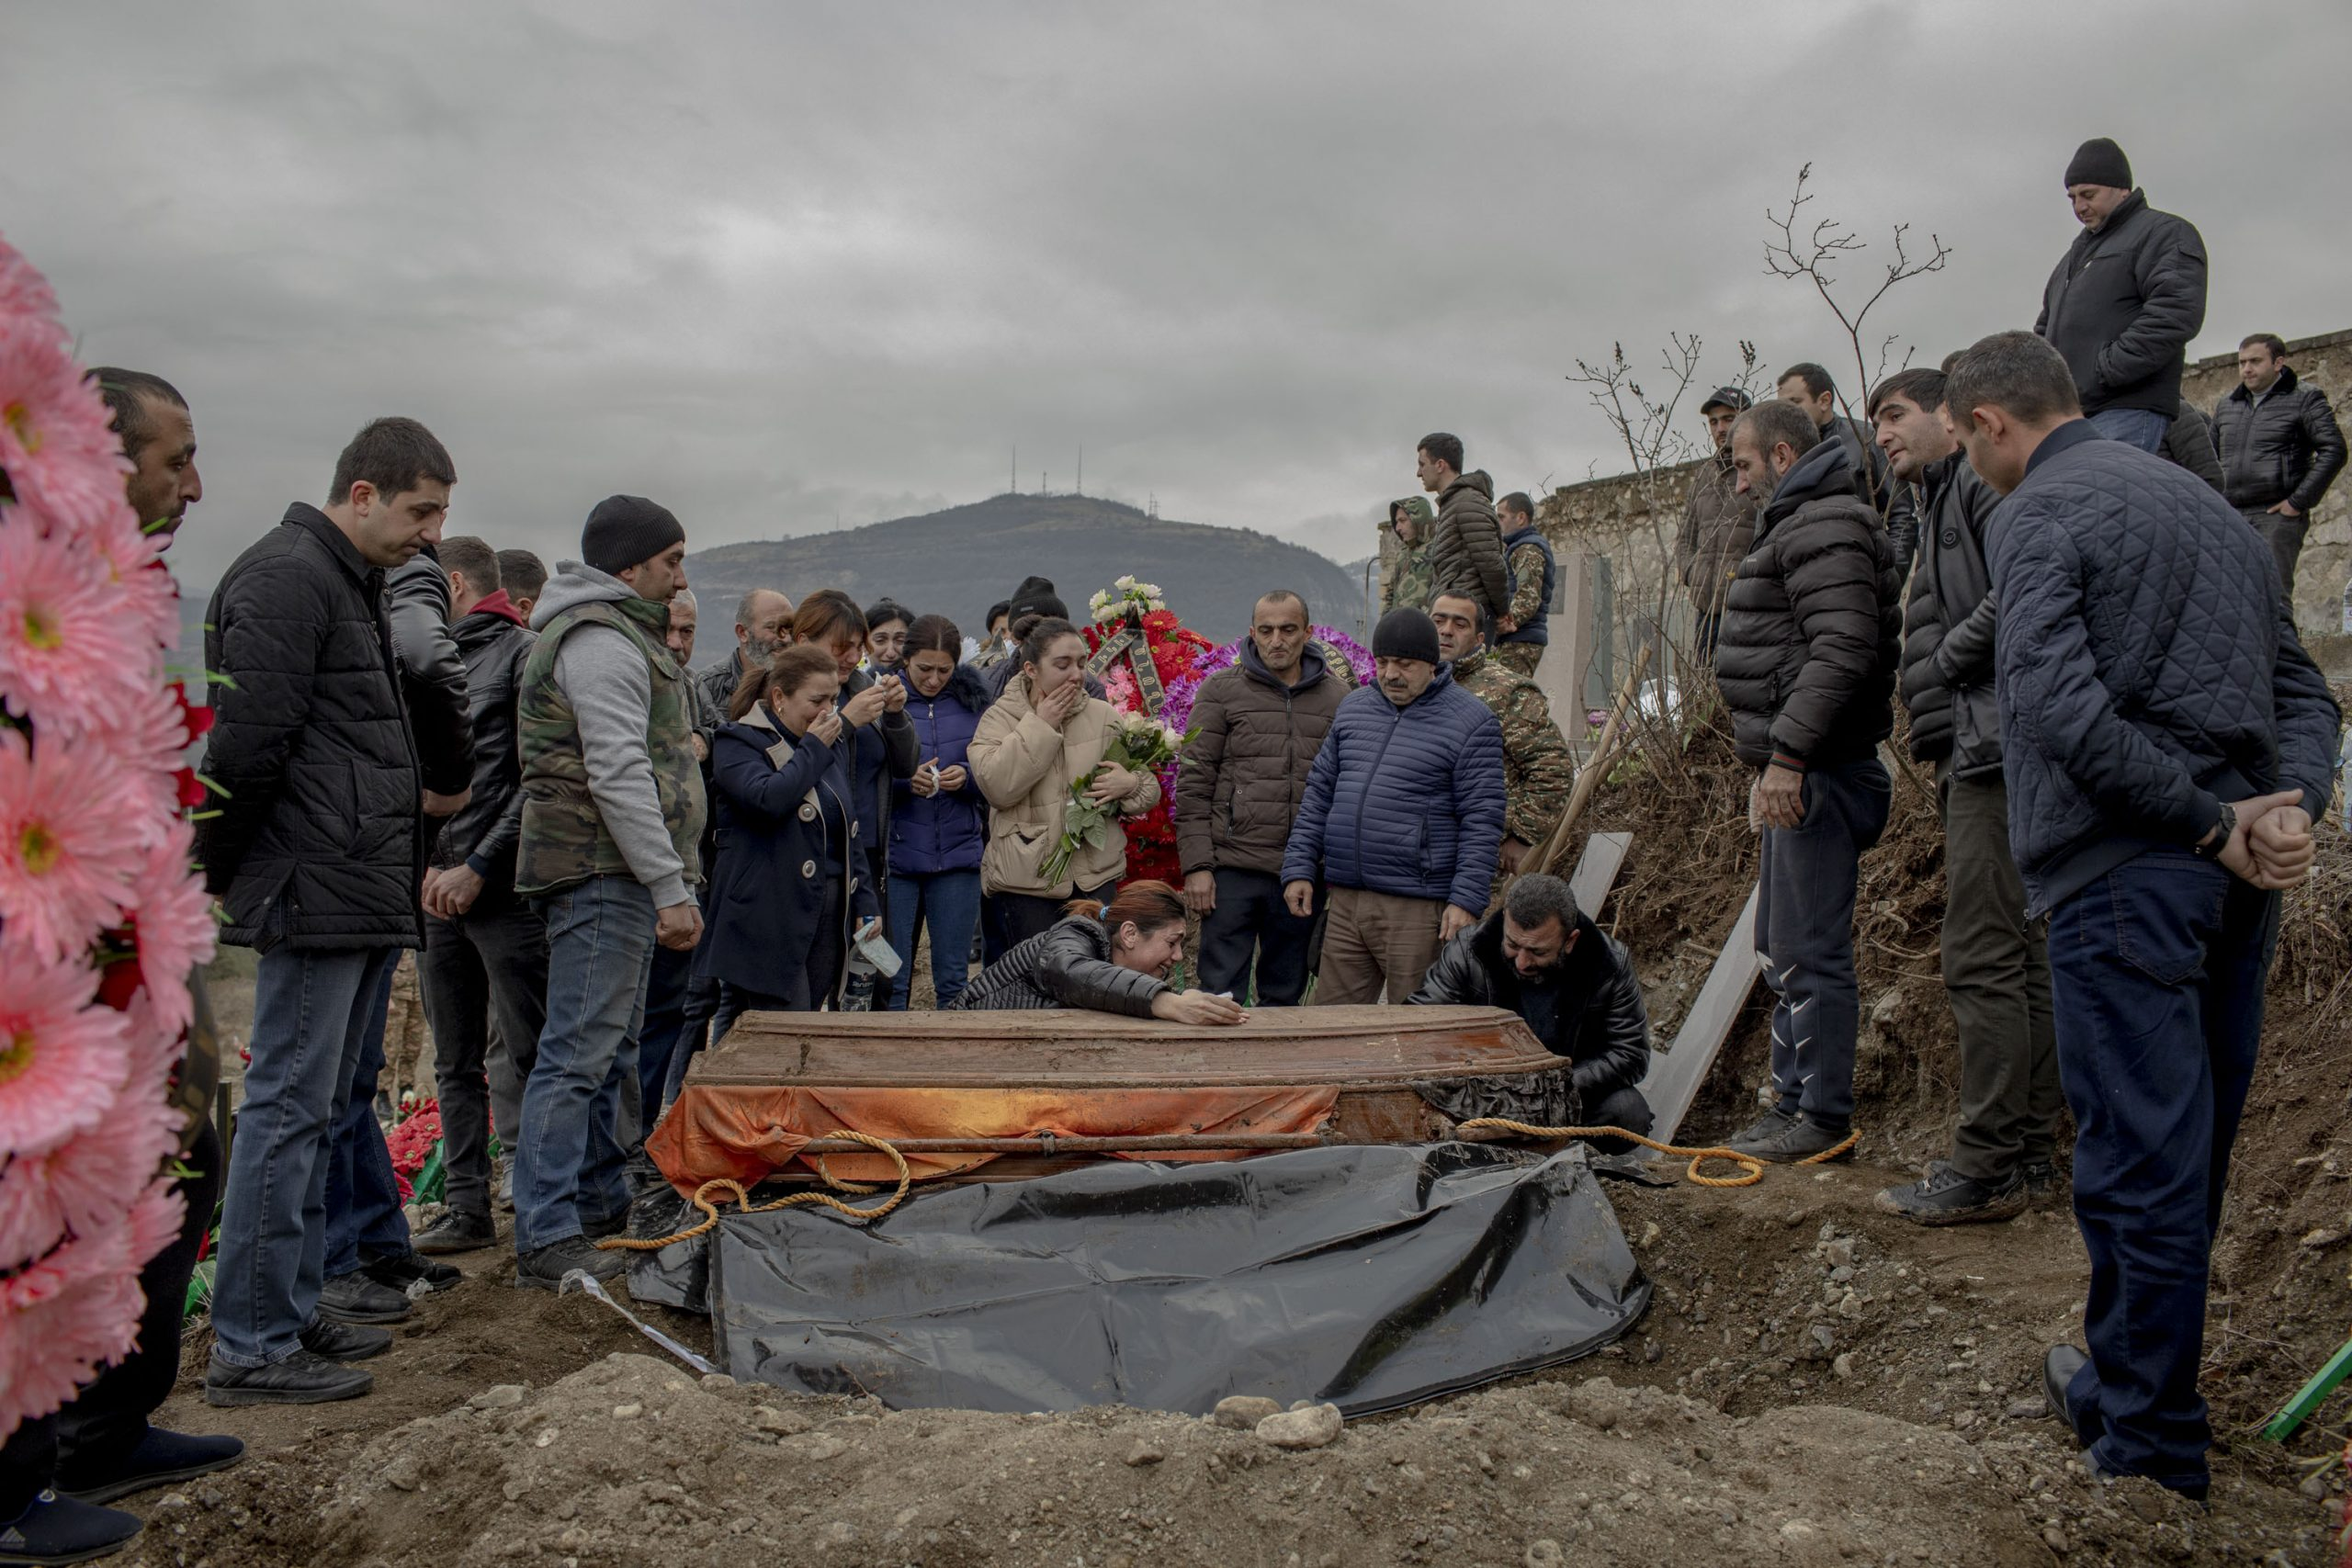 Anush Aleksanyan cries over the coffin that carries her son Erik Hovsepyan, 18, in Stepanakert, Nagorno-Karabakh on December 19, 2020. Erik is buried for the second time, his coffin was transferred from Nagorno-Karabakh's Taghavard village to Stepanakert, as Taghavard came under Azerbaijan's control.